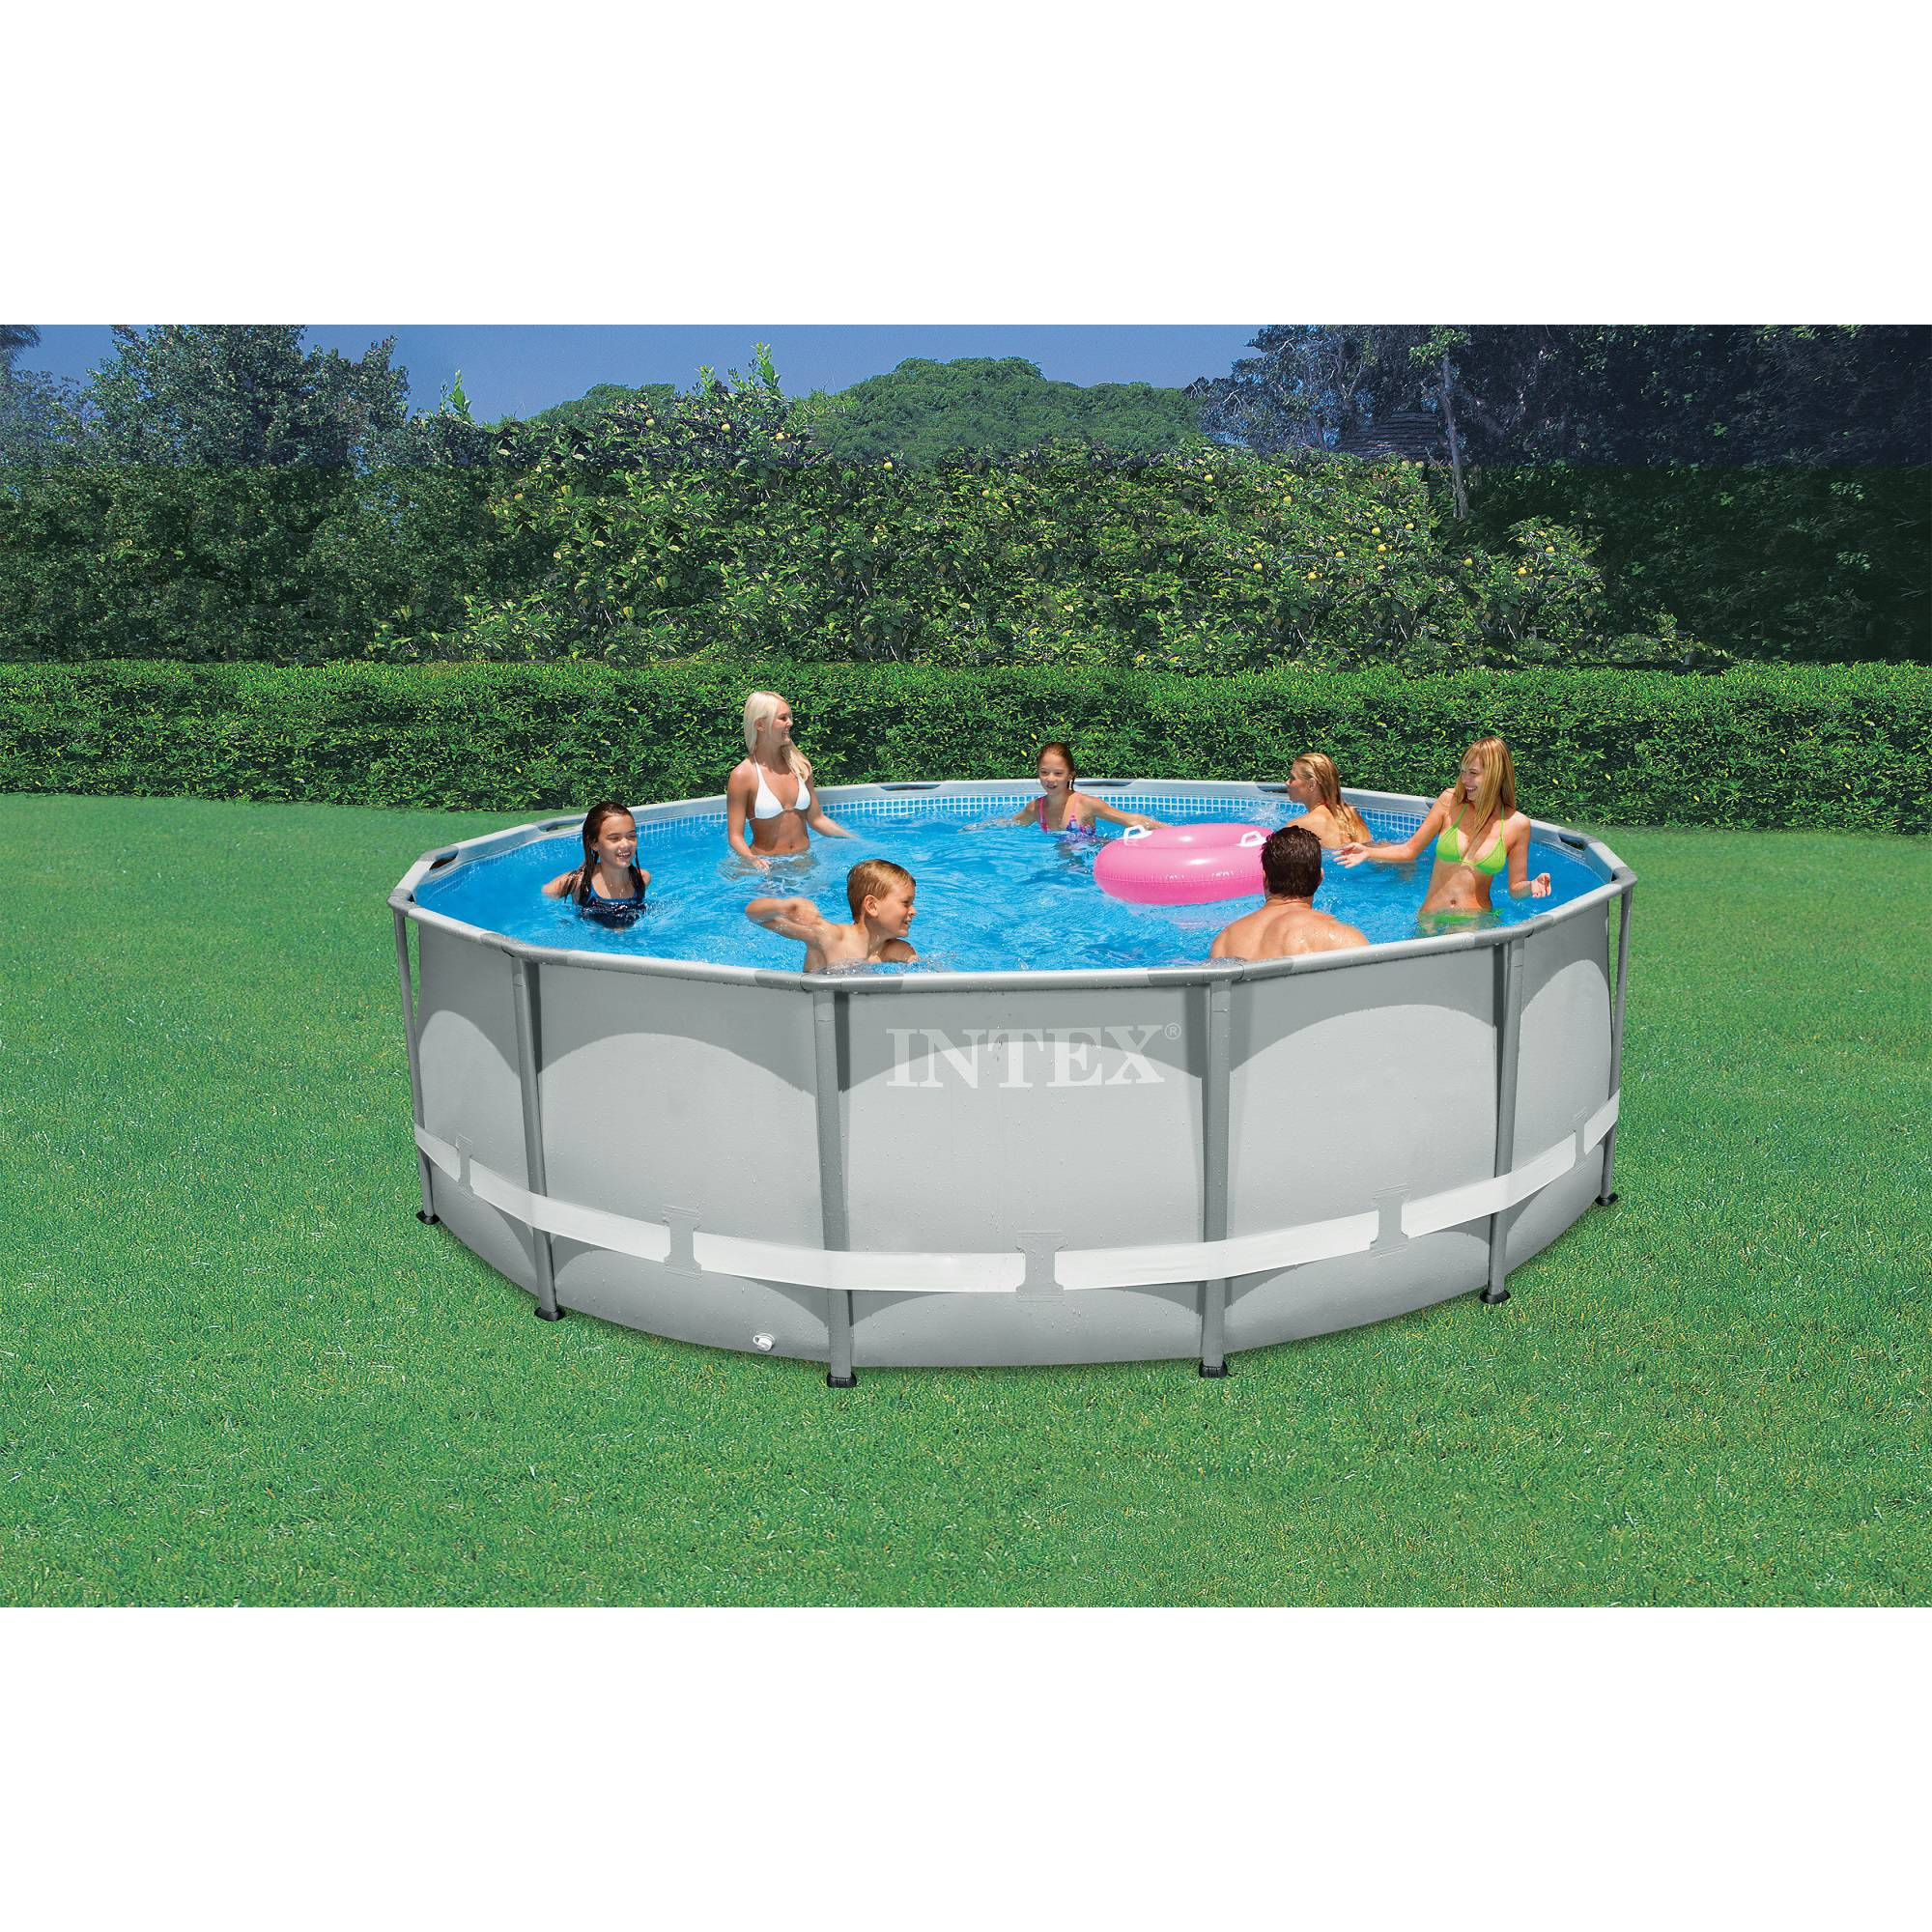 intex 14 x 42 ultra frame above ground swimming pool with filter pump walmartcom